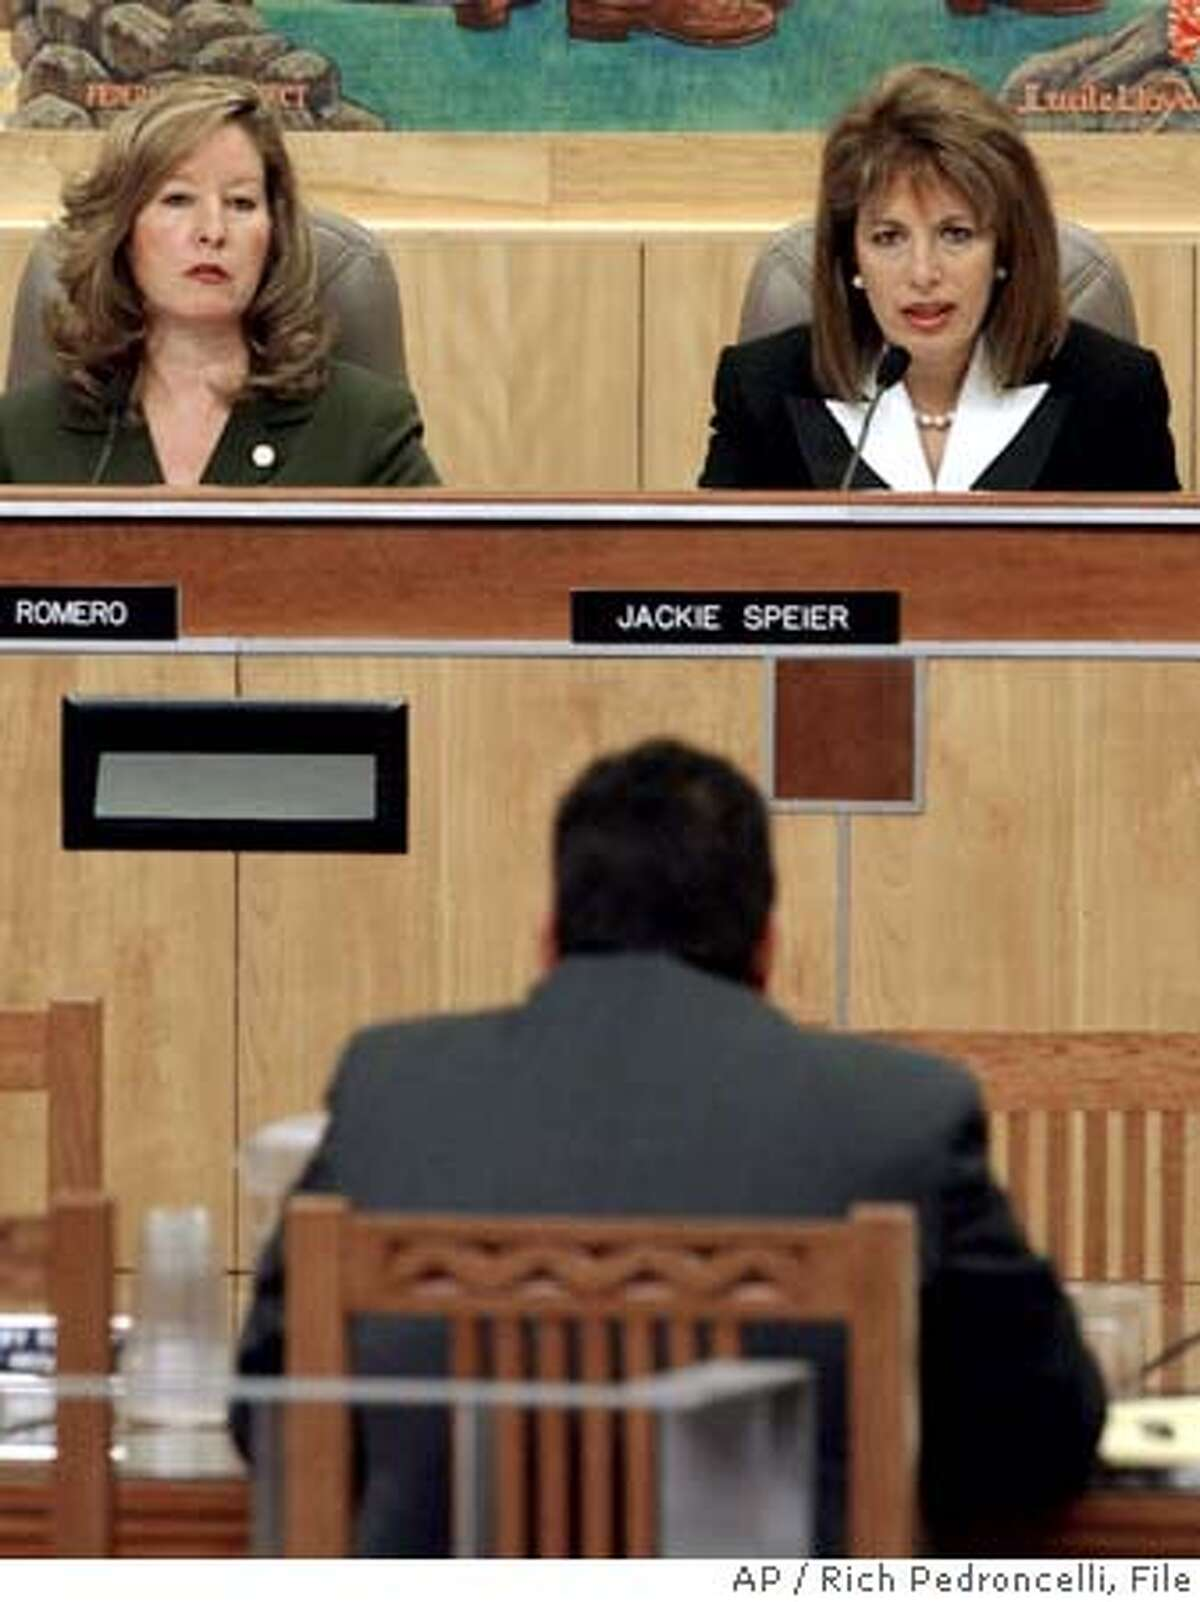 State Sen. Jackie Speier, D-Daly City, right, questions Mike Jimenez, head of the California Correctional Peace Officers Association, seated back to camera, during a hearing looking into alleged wrongdoing involving staff at Folsom Prison, at the Capitol in Sacramento, Calif., Tuesday, Jan. 20, 2004. At left is state Sen. Gloria Romero.(AP Photo/Rich Pedroncelli) also ran 03/29/2004 Gloria Romero and Mark Leno are presenting bills that would open prison doors to journalists. ProductNameChronicle State Sen. Gloria Romero said the Youth Authority must make wholesale changes. ProductNameChronicle State Sen. Jackie Speier of Hillsborough (right) questions Mike Jimenez, head of the prison guards union, at a January hearing.